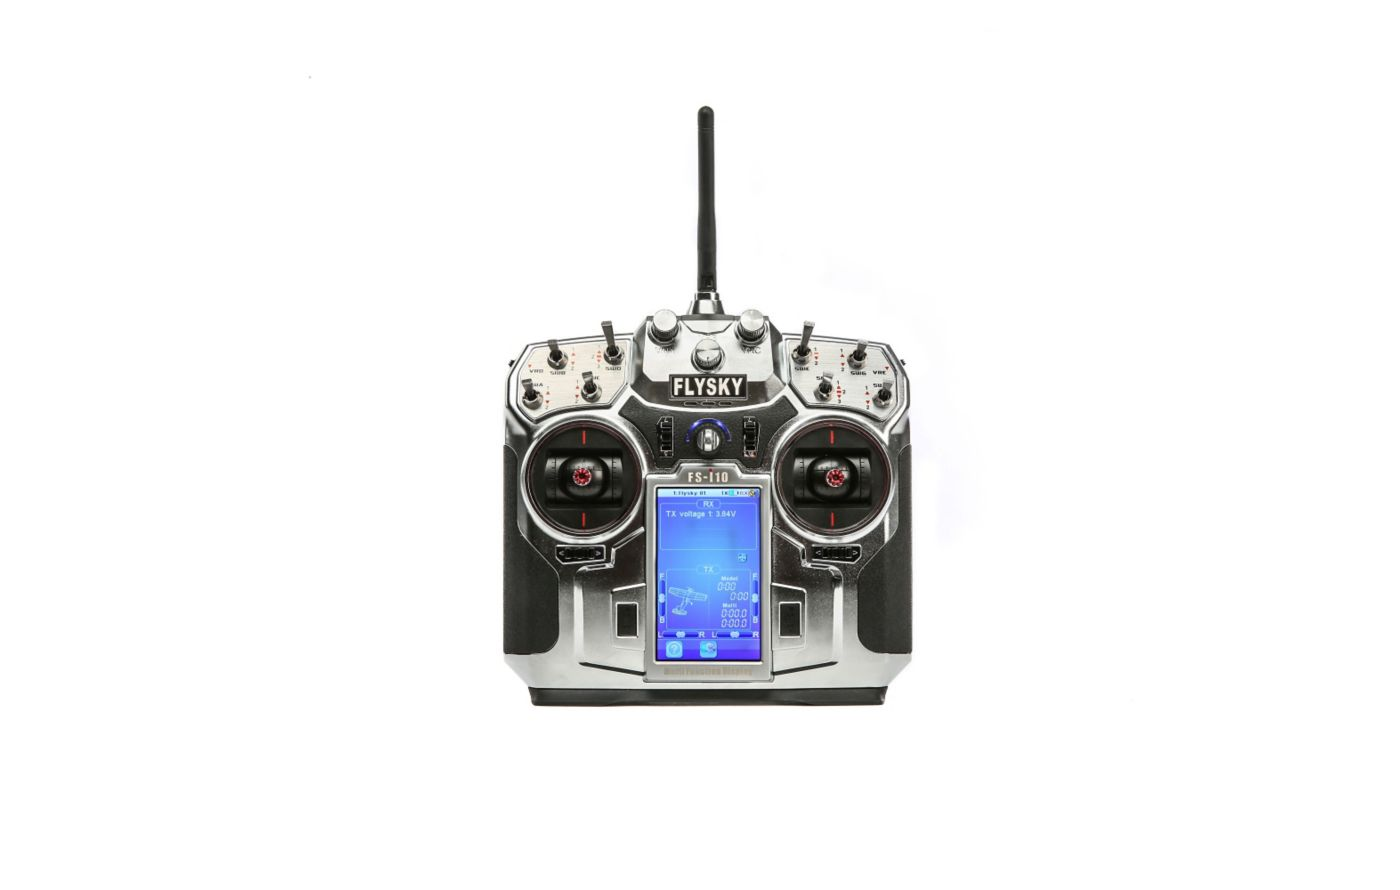 Image for FS-i10 Transmitter and FS-iA10 Receiver from Force RC